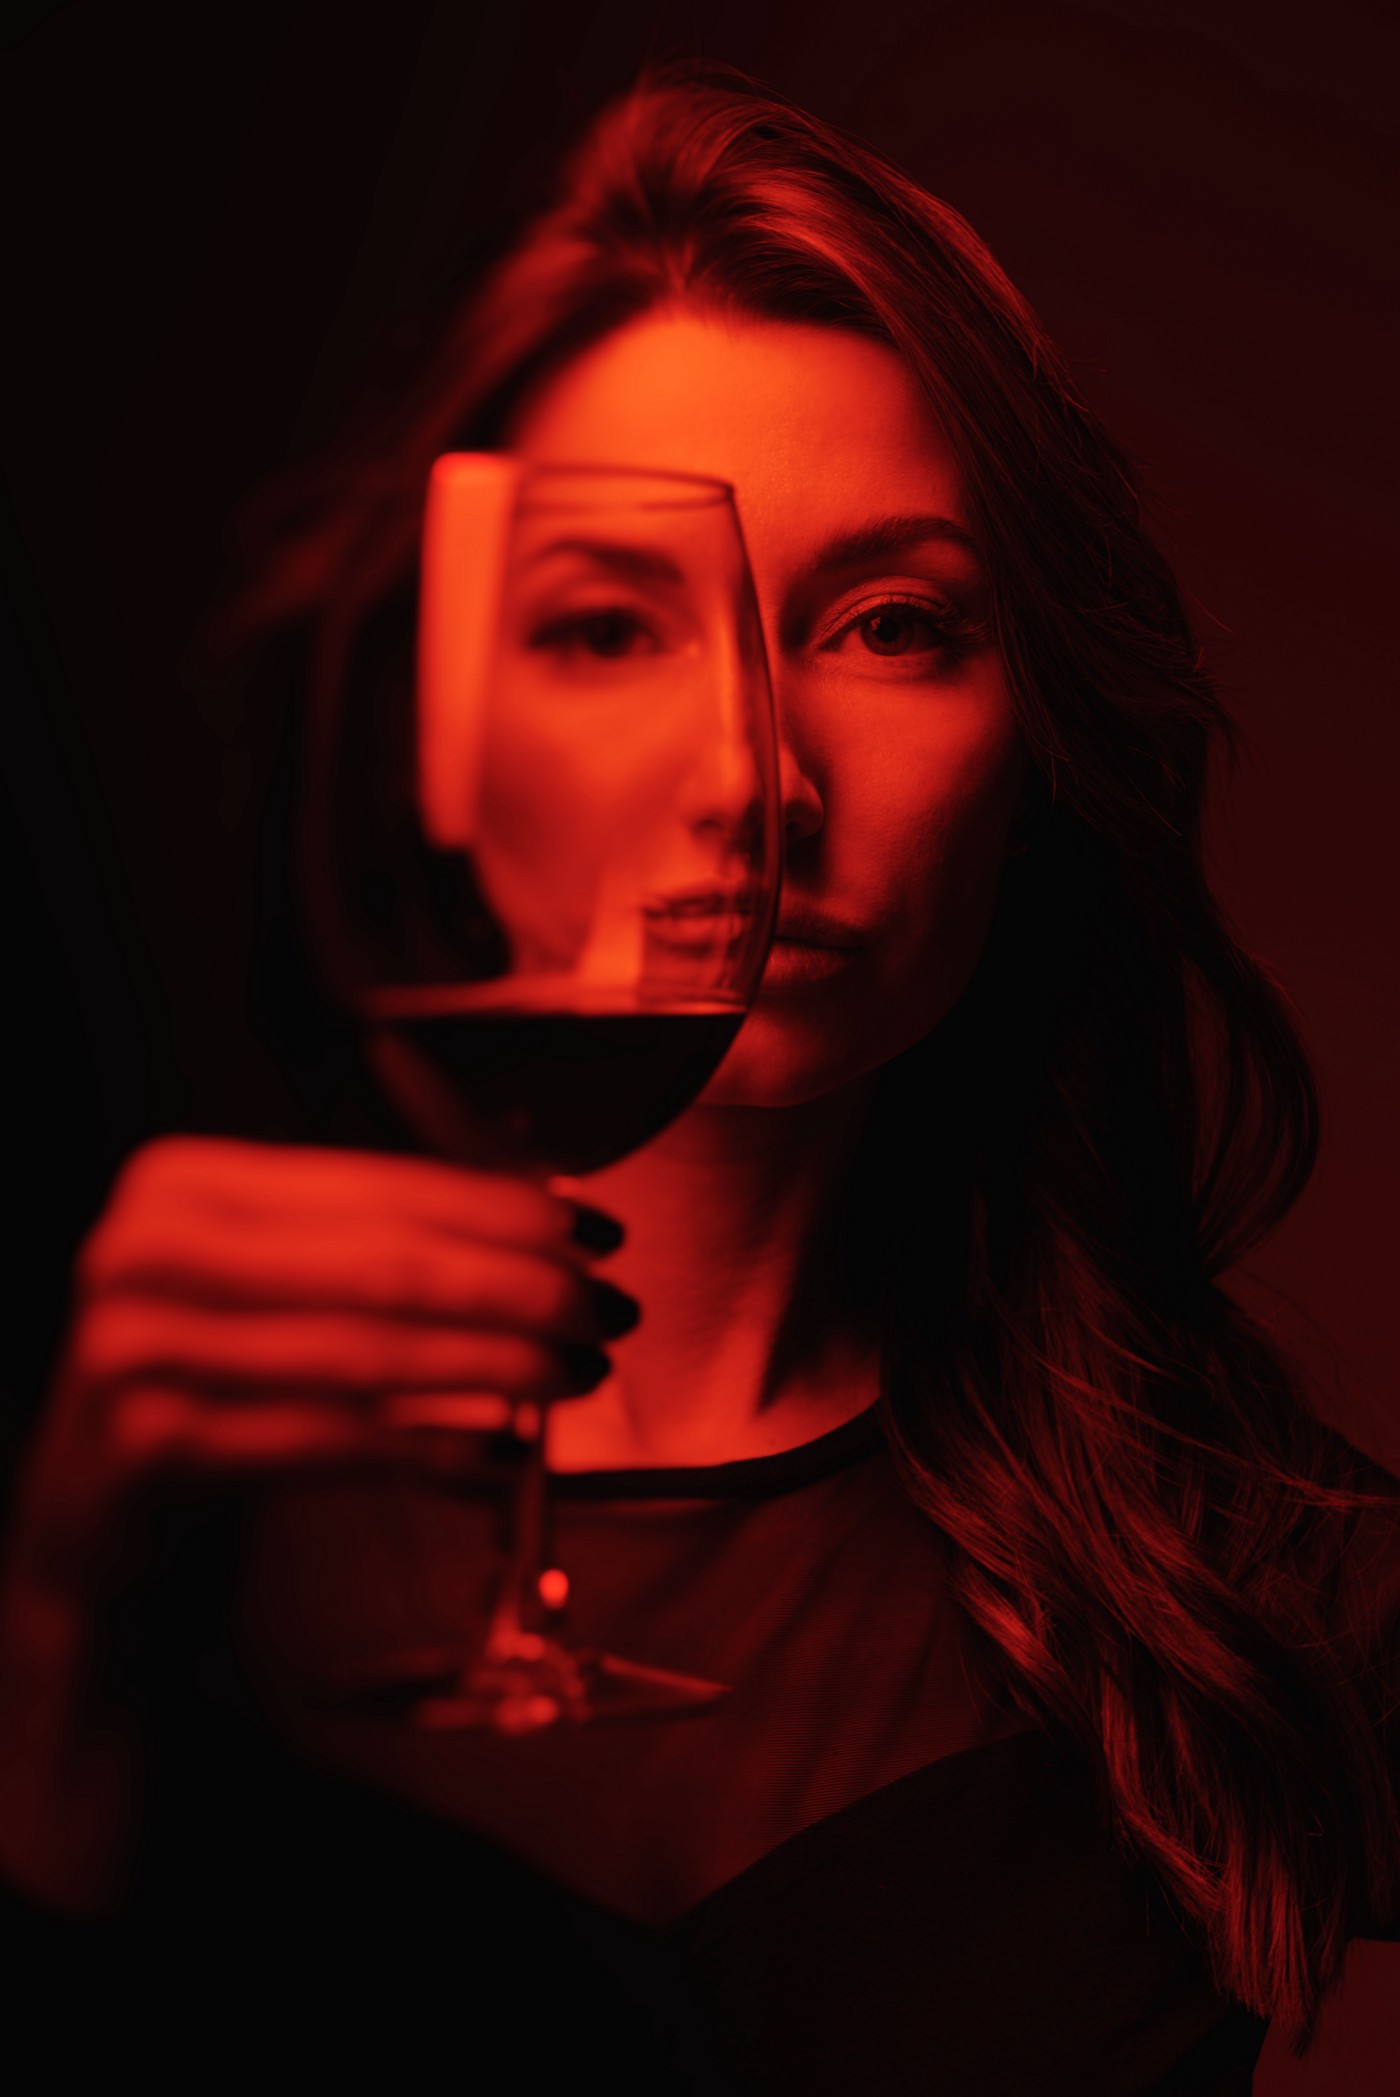 Attractive woman holding a glass of red wine